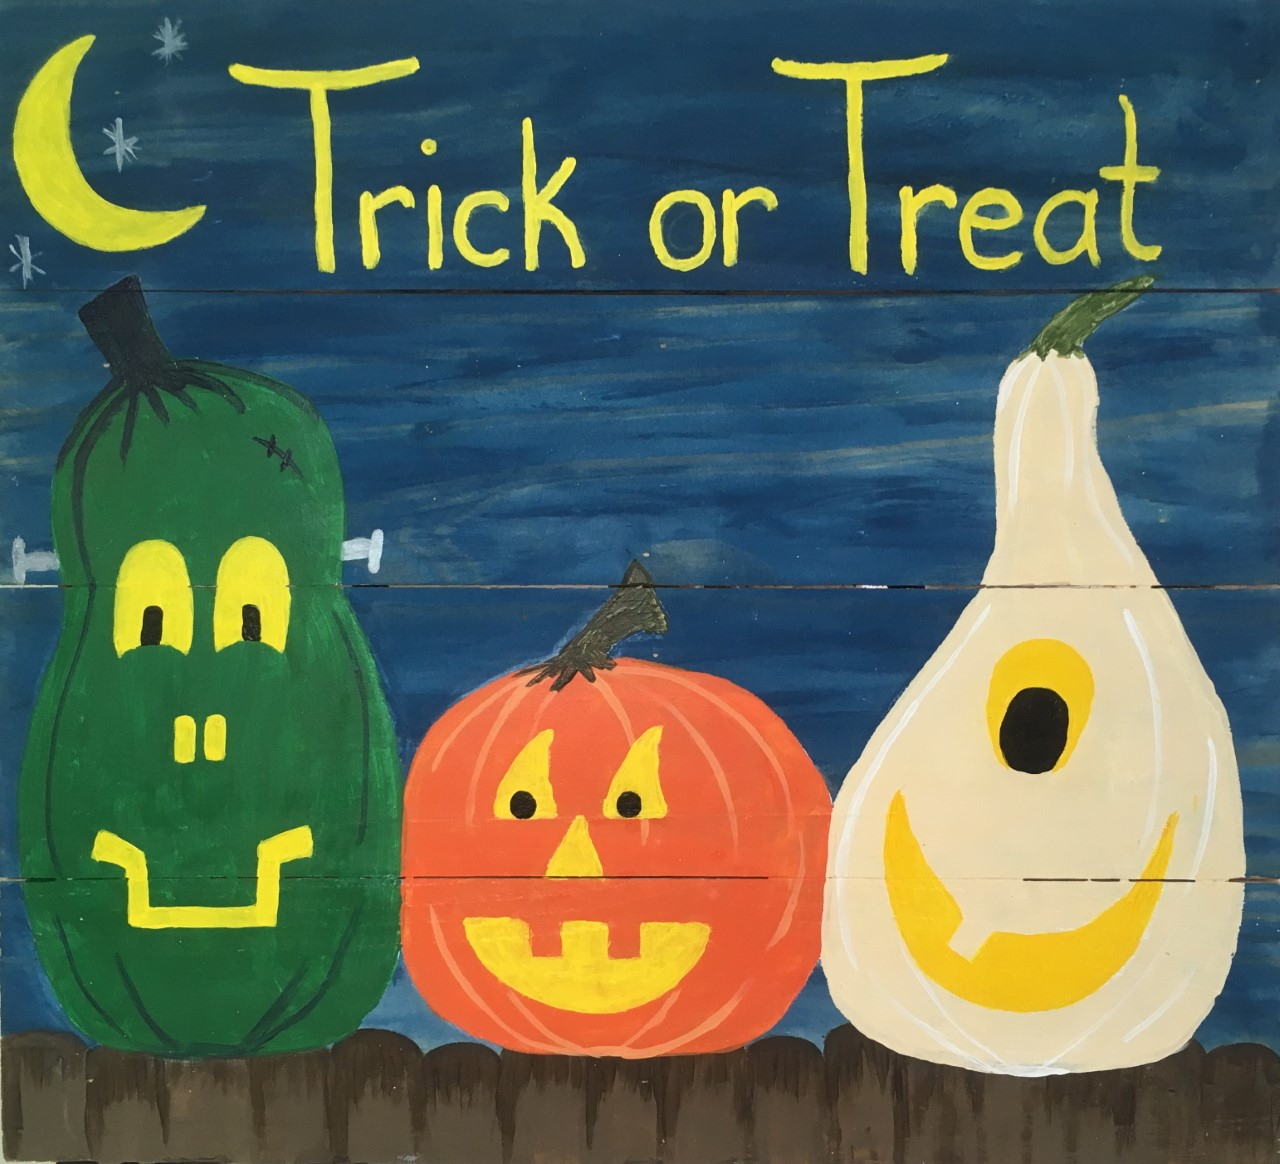 Nighttime Trick or Treat Wood Pallet Sign